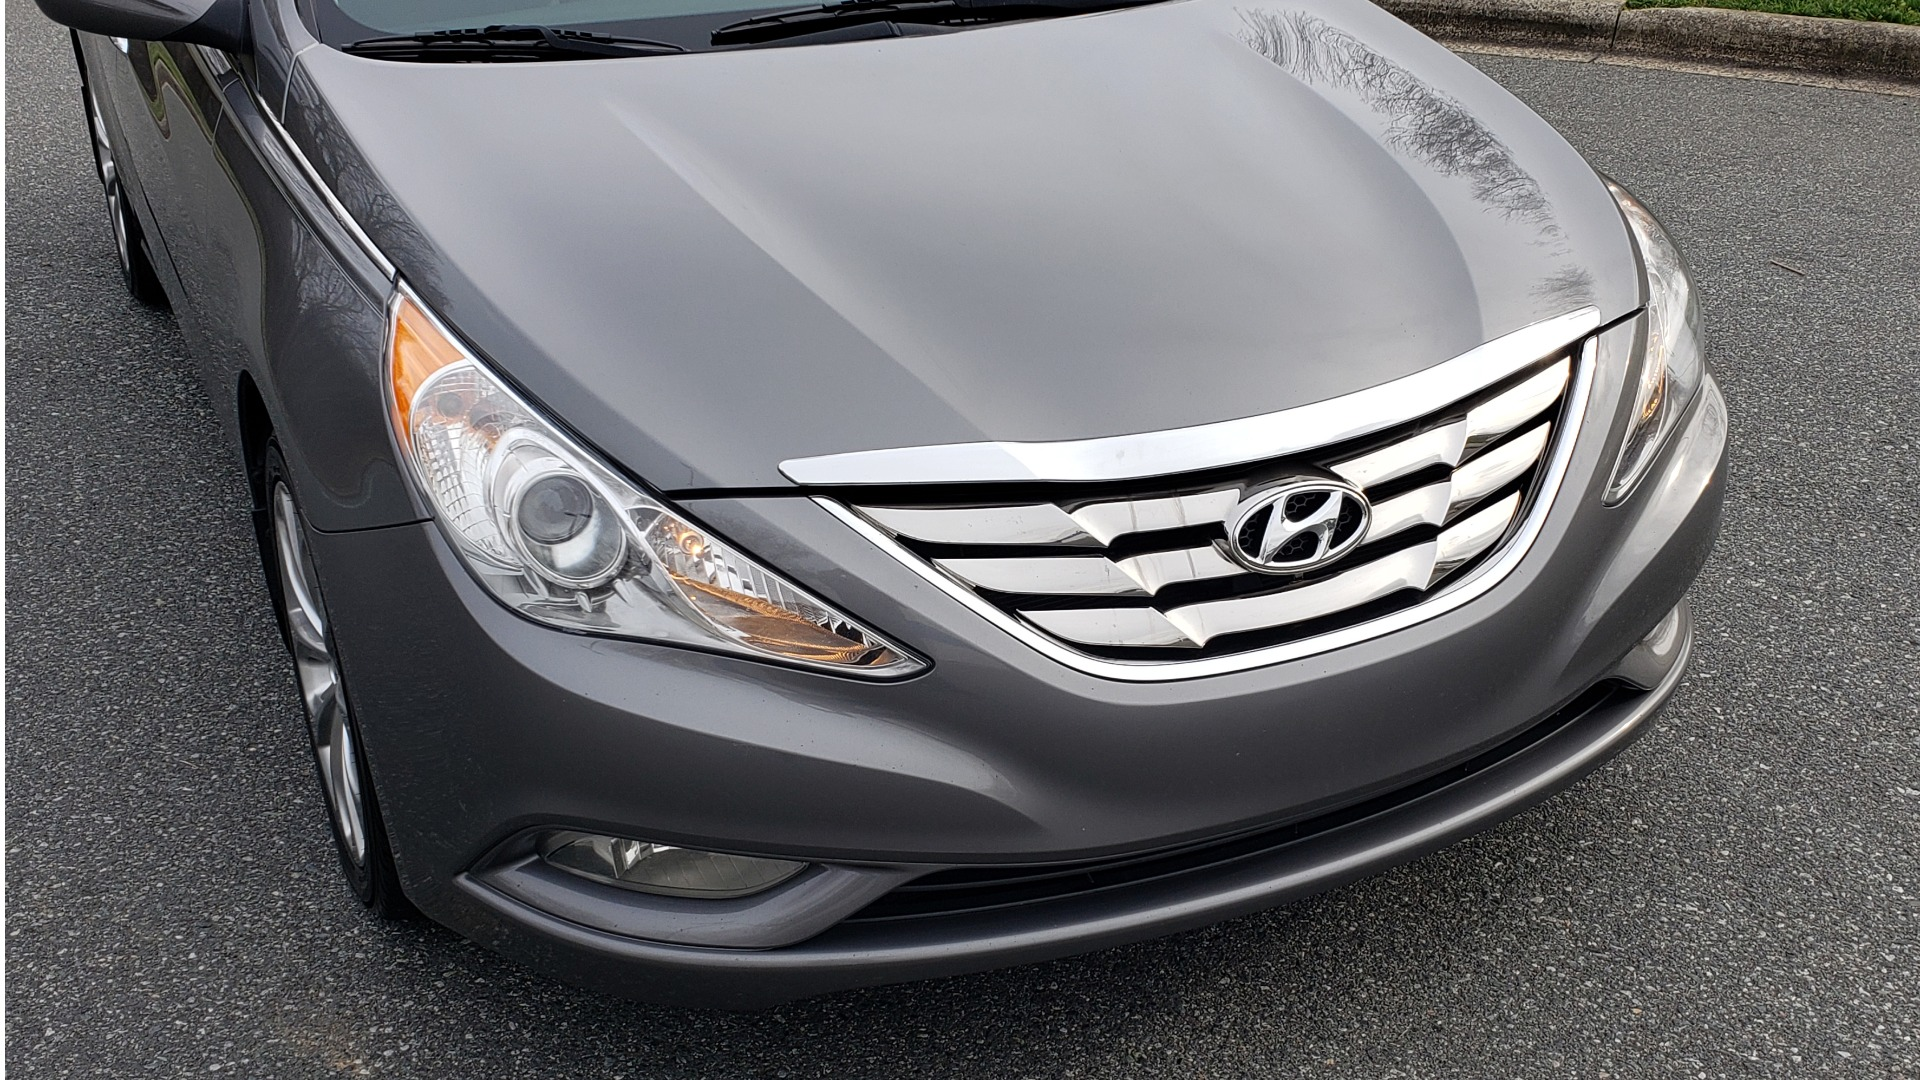 Used 2013 Hyundai SONATA SE AUTO / 2.4L 4-CYL / 6-SPD AUTO / VERY CLEAN for sale Sold at Formula Imports in Charlotte NC 28227 26